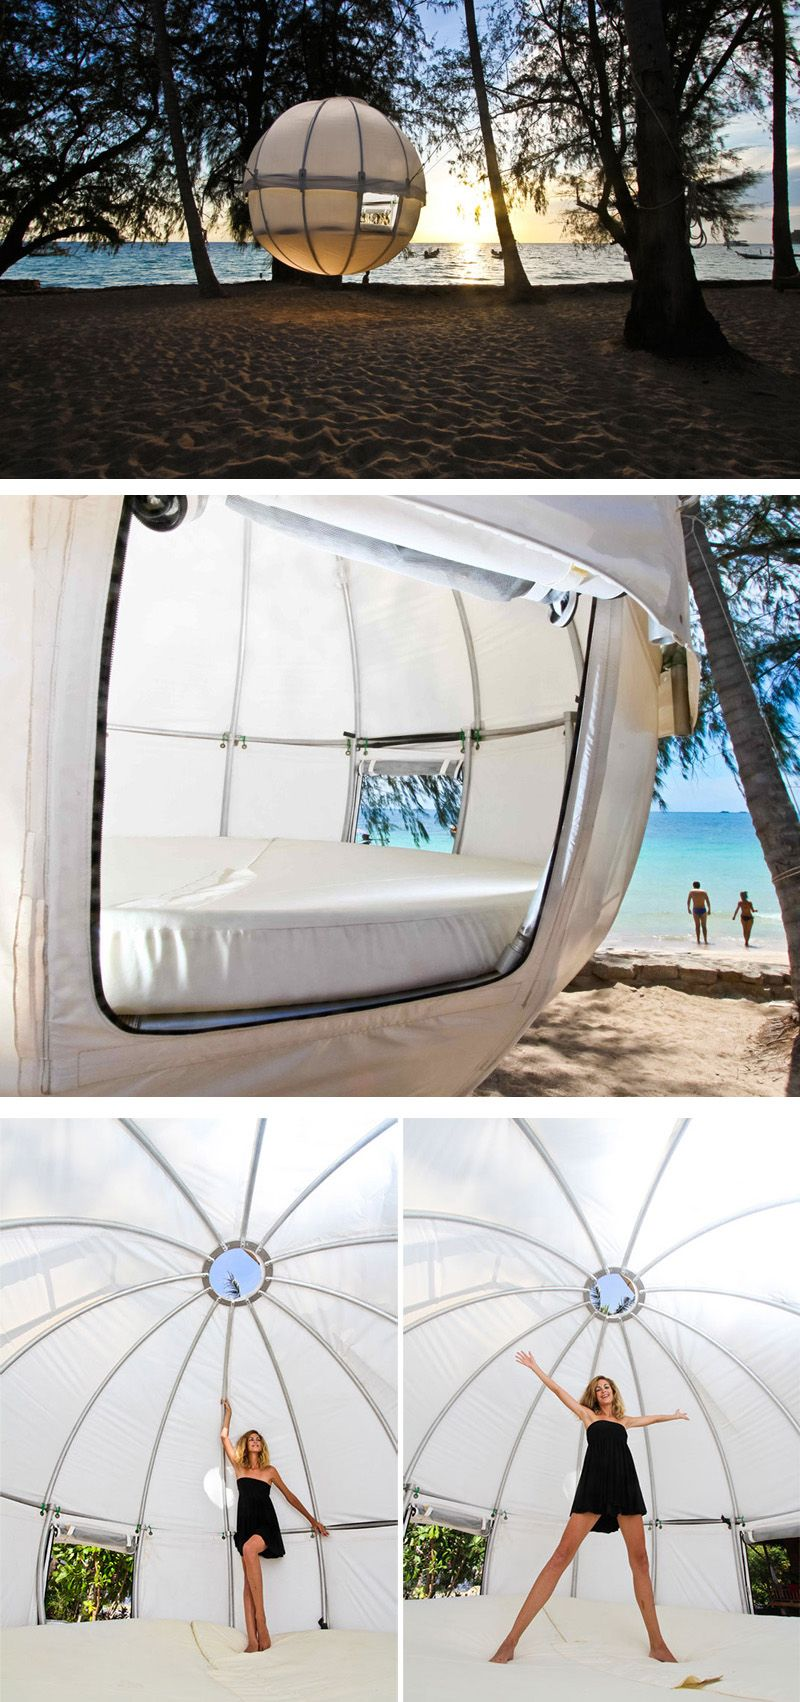 Now You Can Sleep In A Suspended Pod Among The Trees // The Cocoon Tree is a spherical structure that can be suspended from trees, allowing you to hang above the ground in a pod. True V.